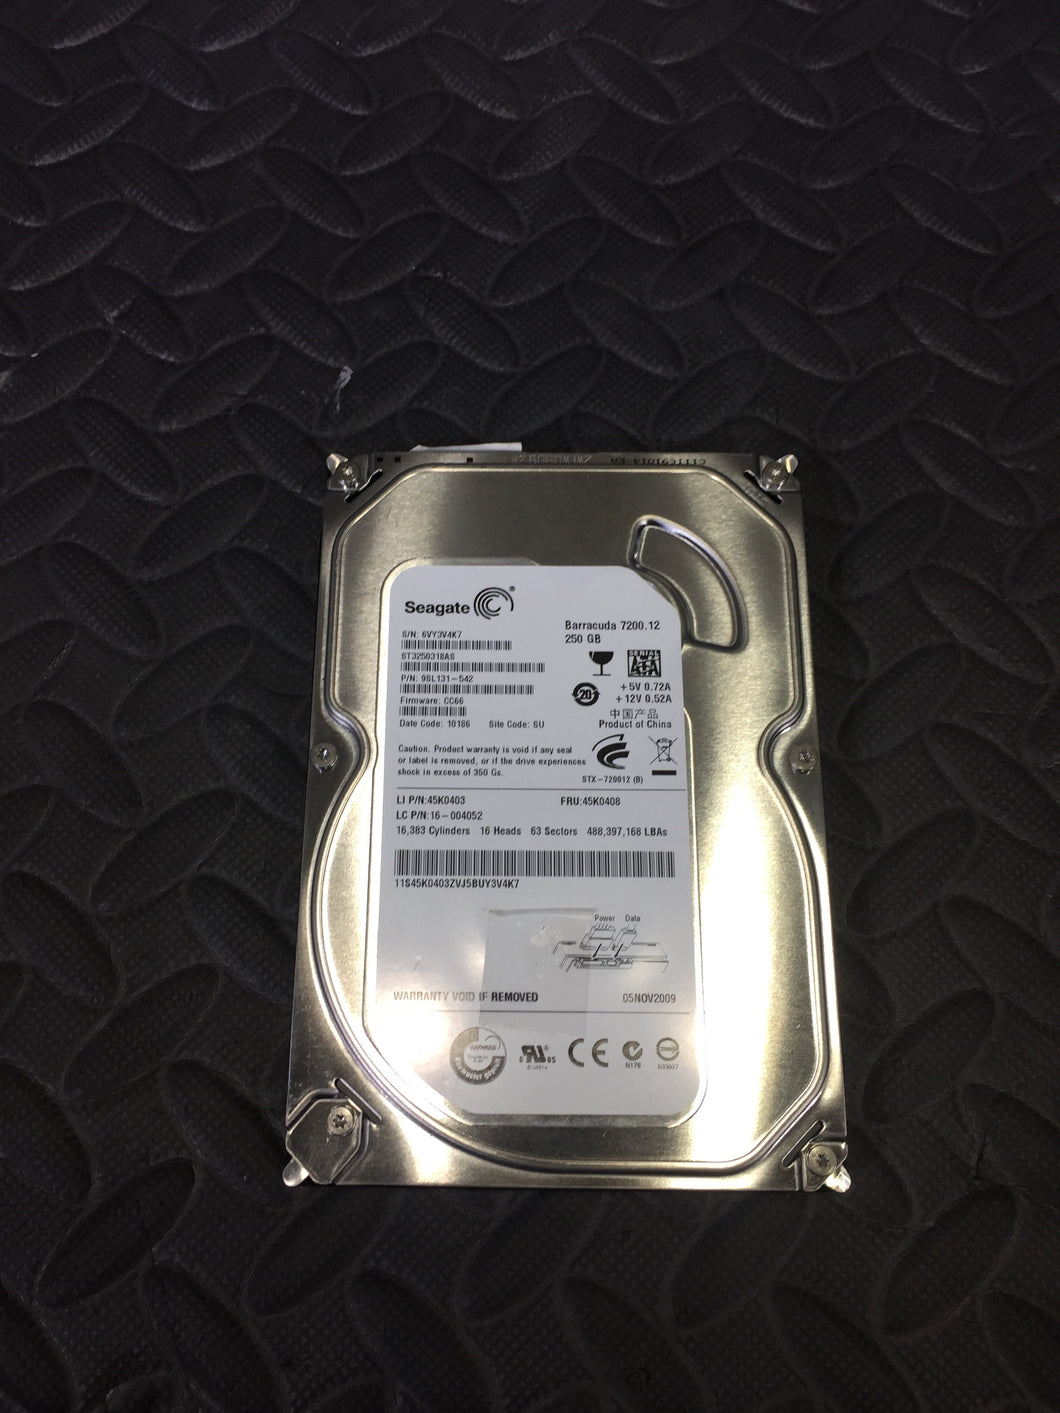 Seagate ST3250318AS 3.5